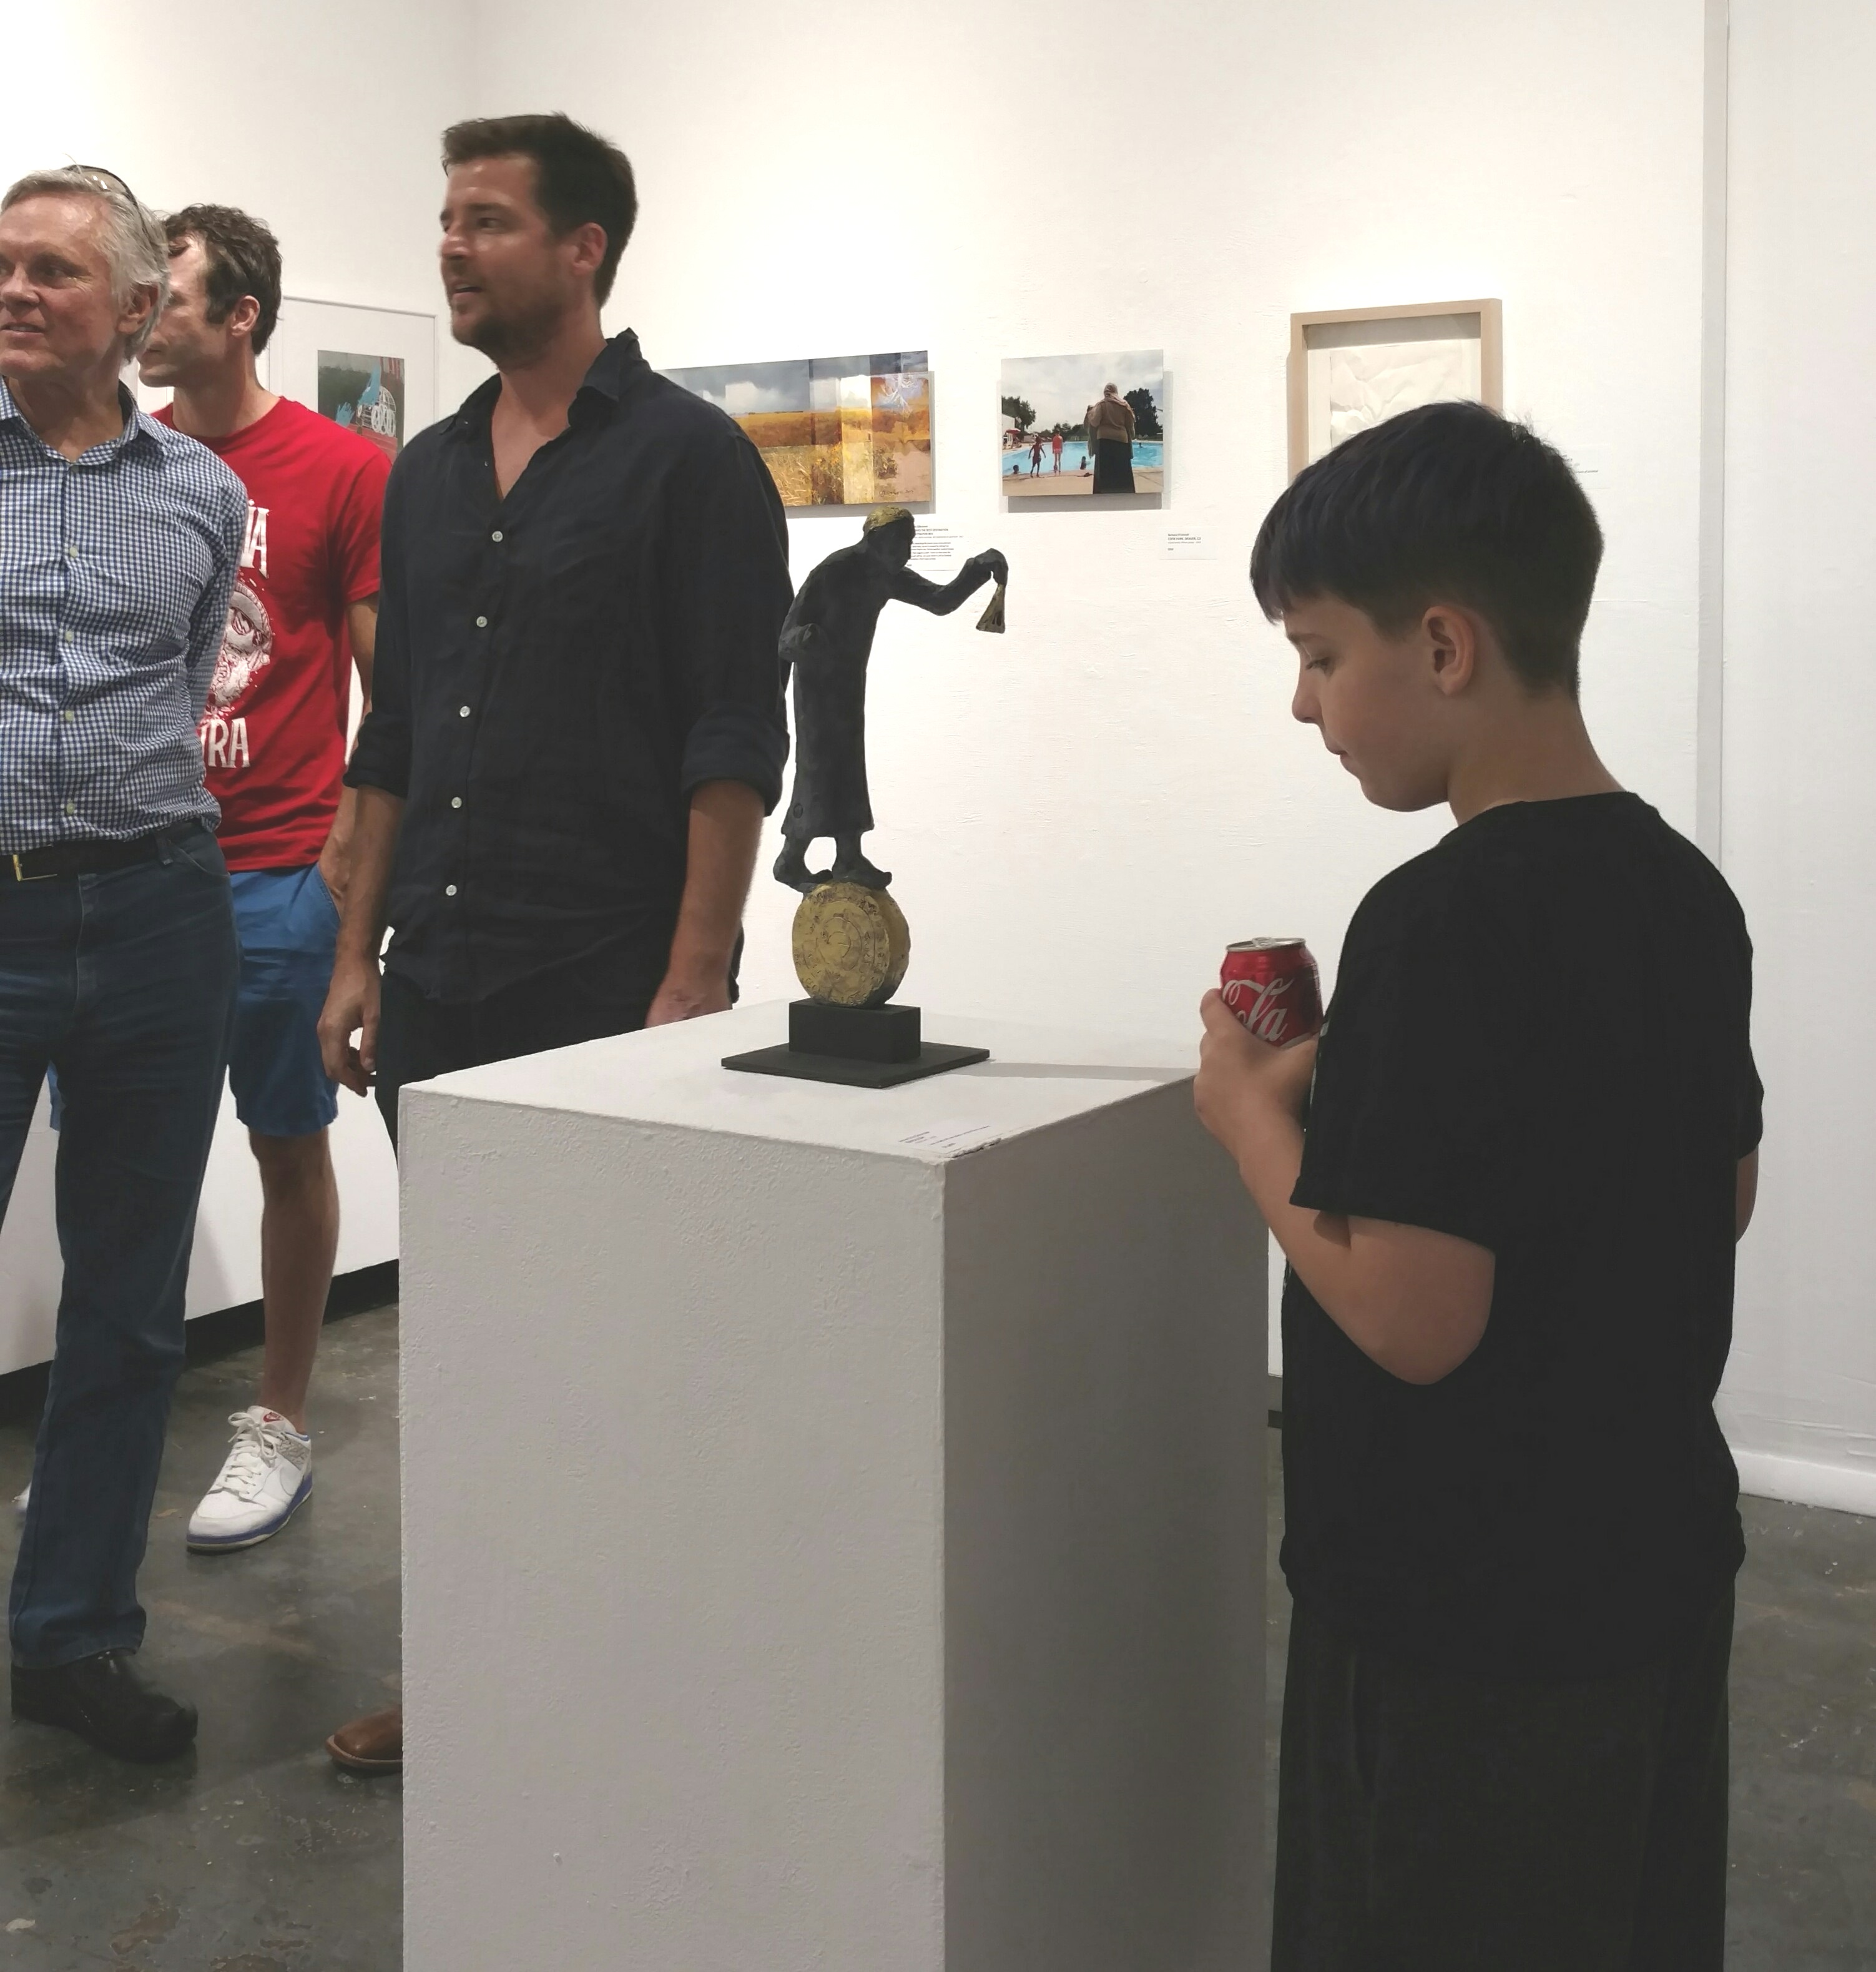 Paradox Art Show Spark Gallery Denver August 2017 Belgin Yucelen sculpture 3